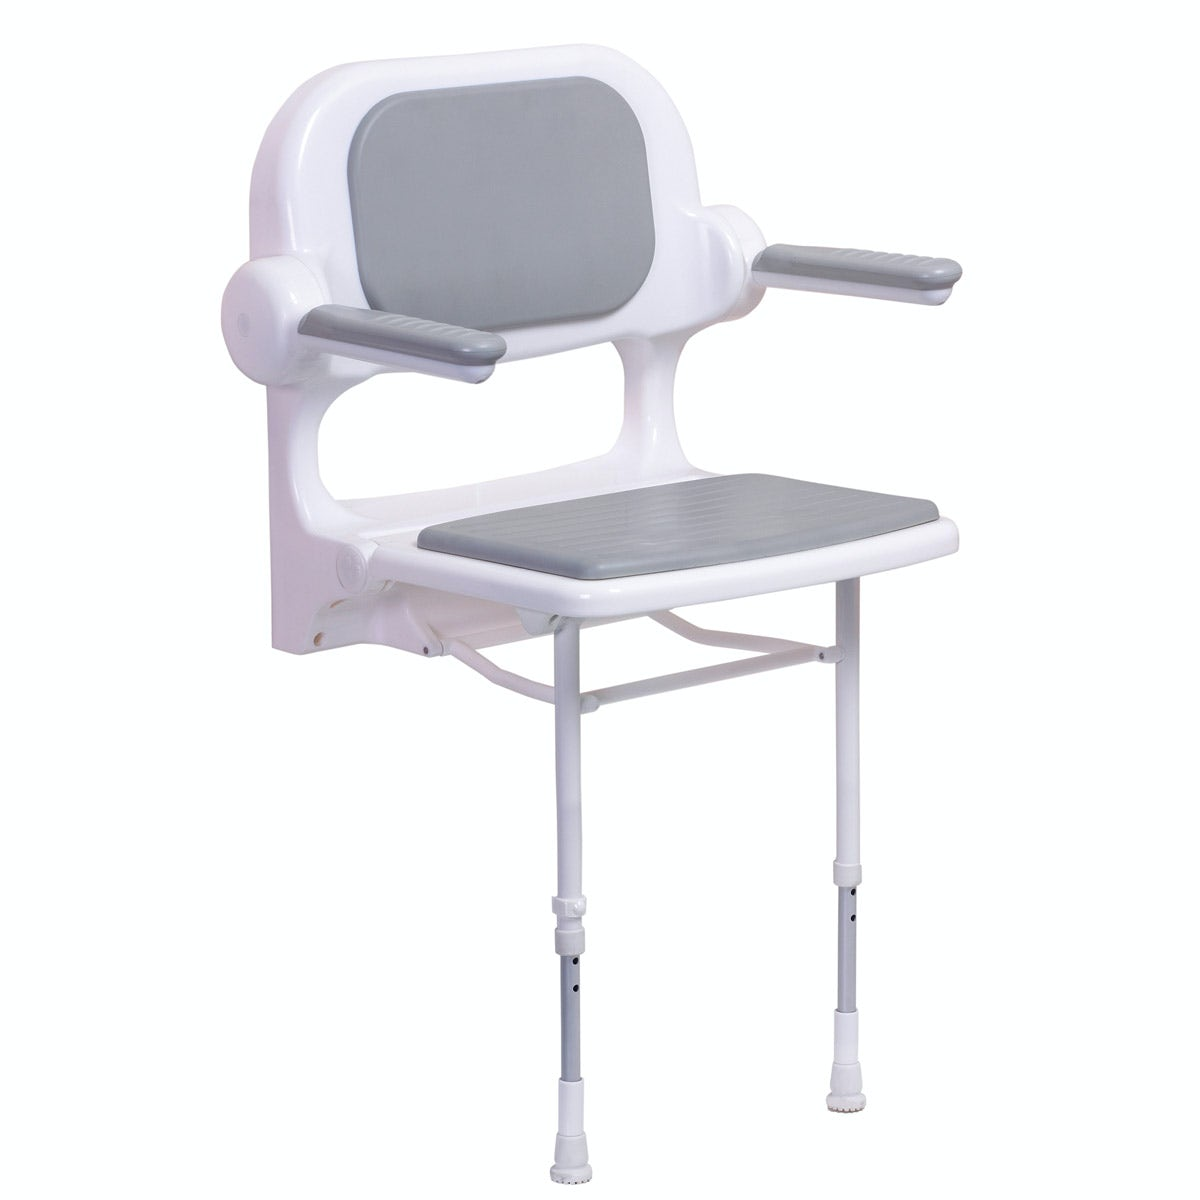 AKW 2000 series folding shower seat with back and arms and grey pad - Sold by Victoria Plum